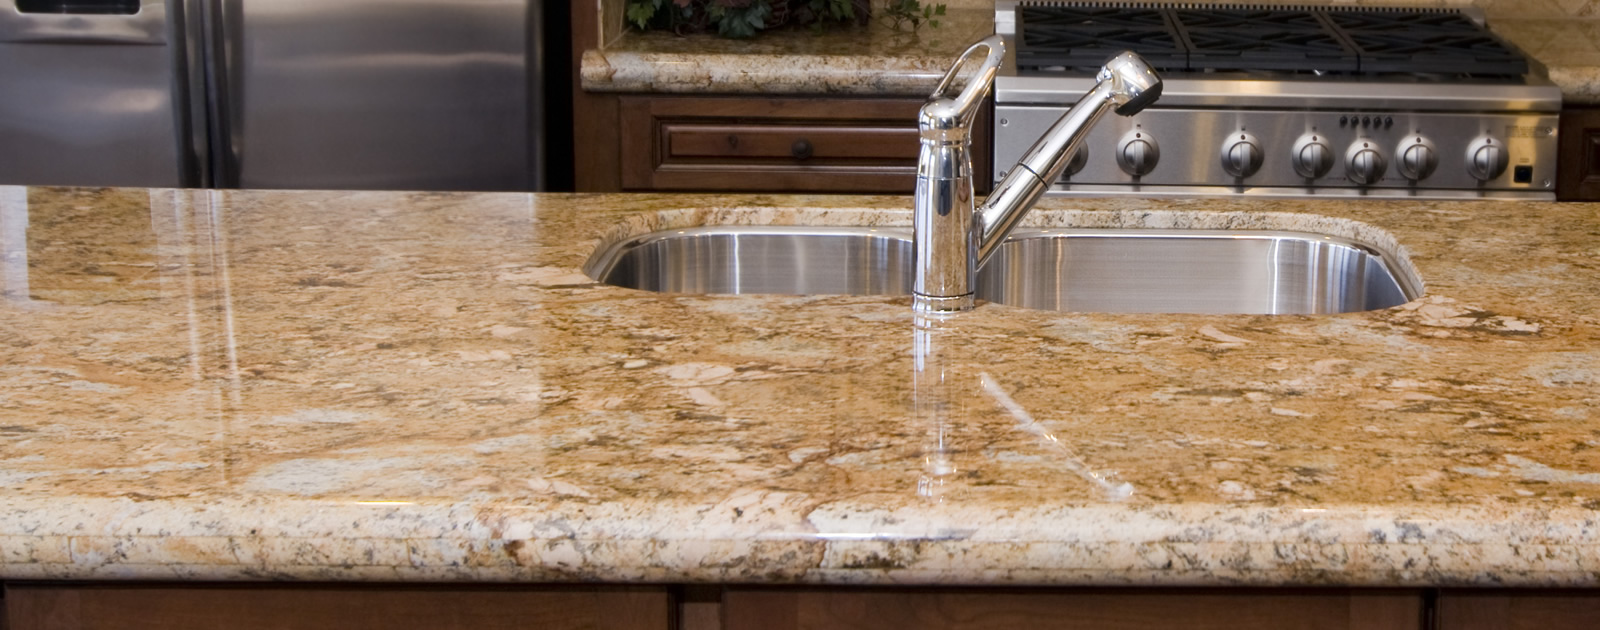 Countertops : Twin Cities Top Rated Discount Granite Countertop Installation ...